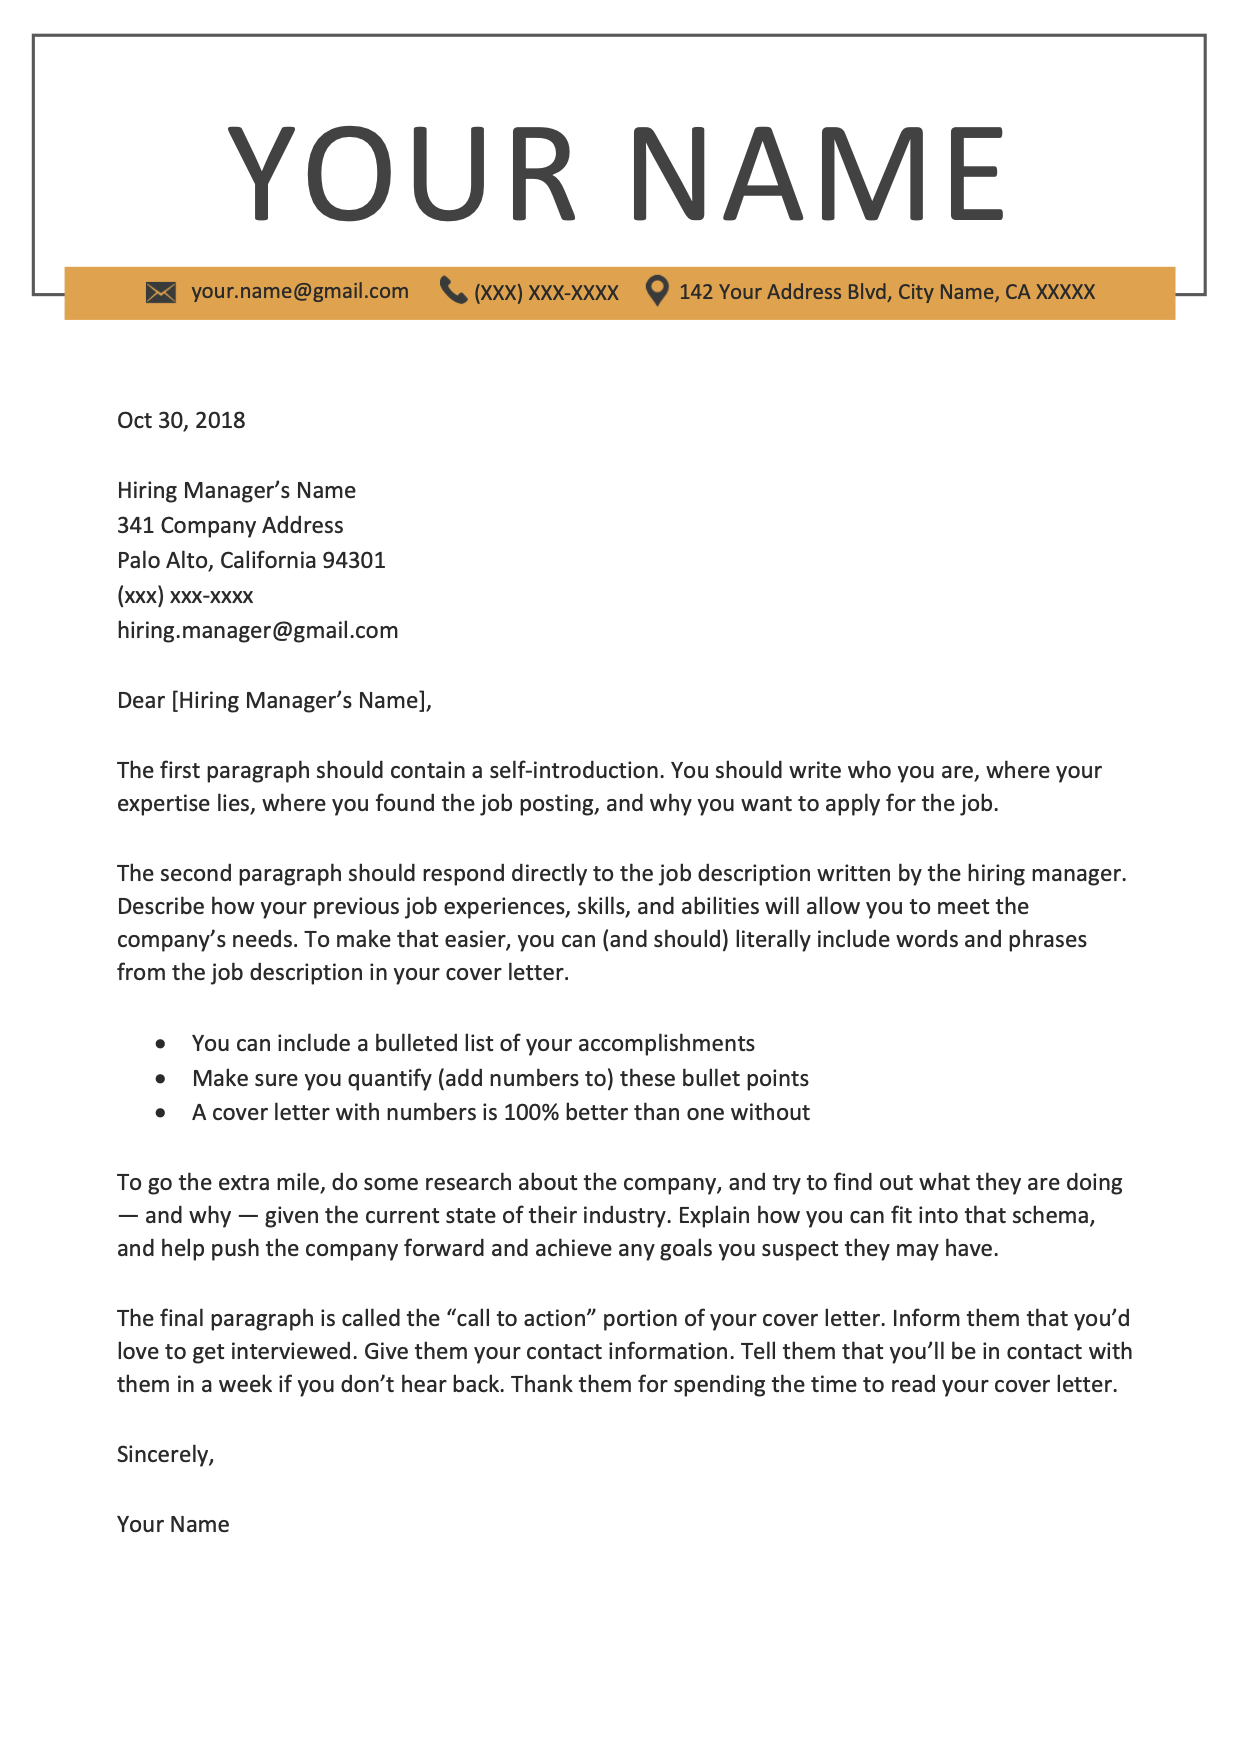 professional cover letter templates (with images) program manager resume examples 2017 customer service objective linkedin profile editing